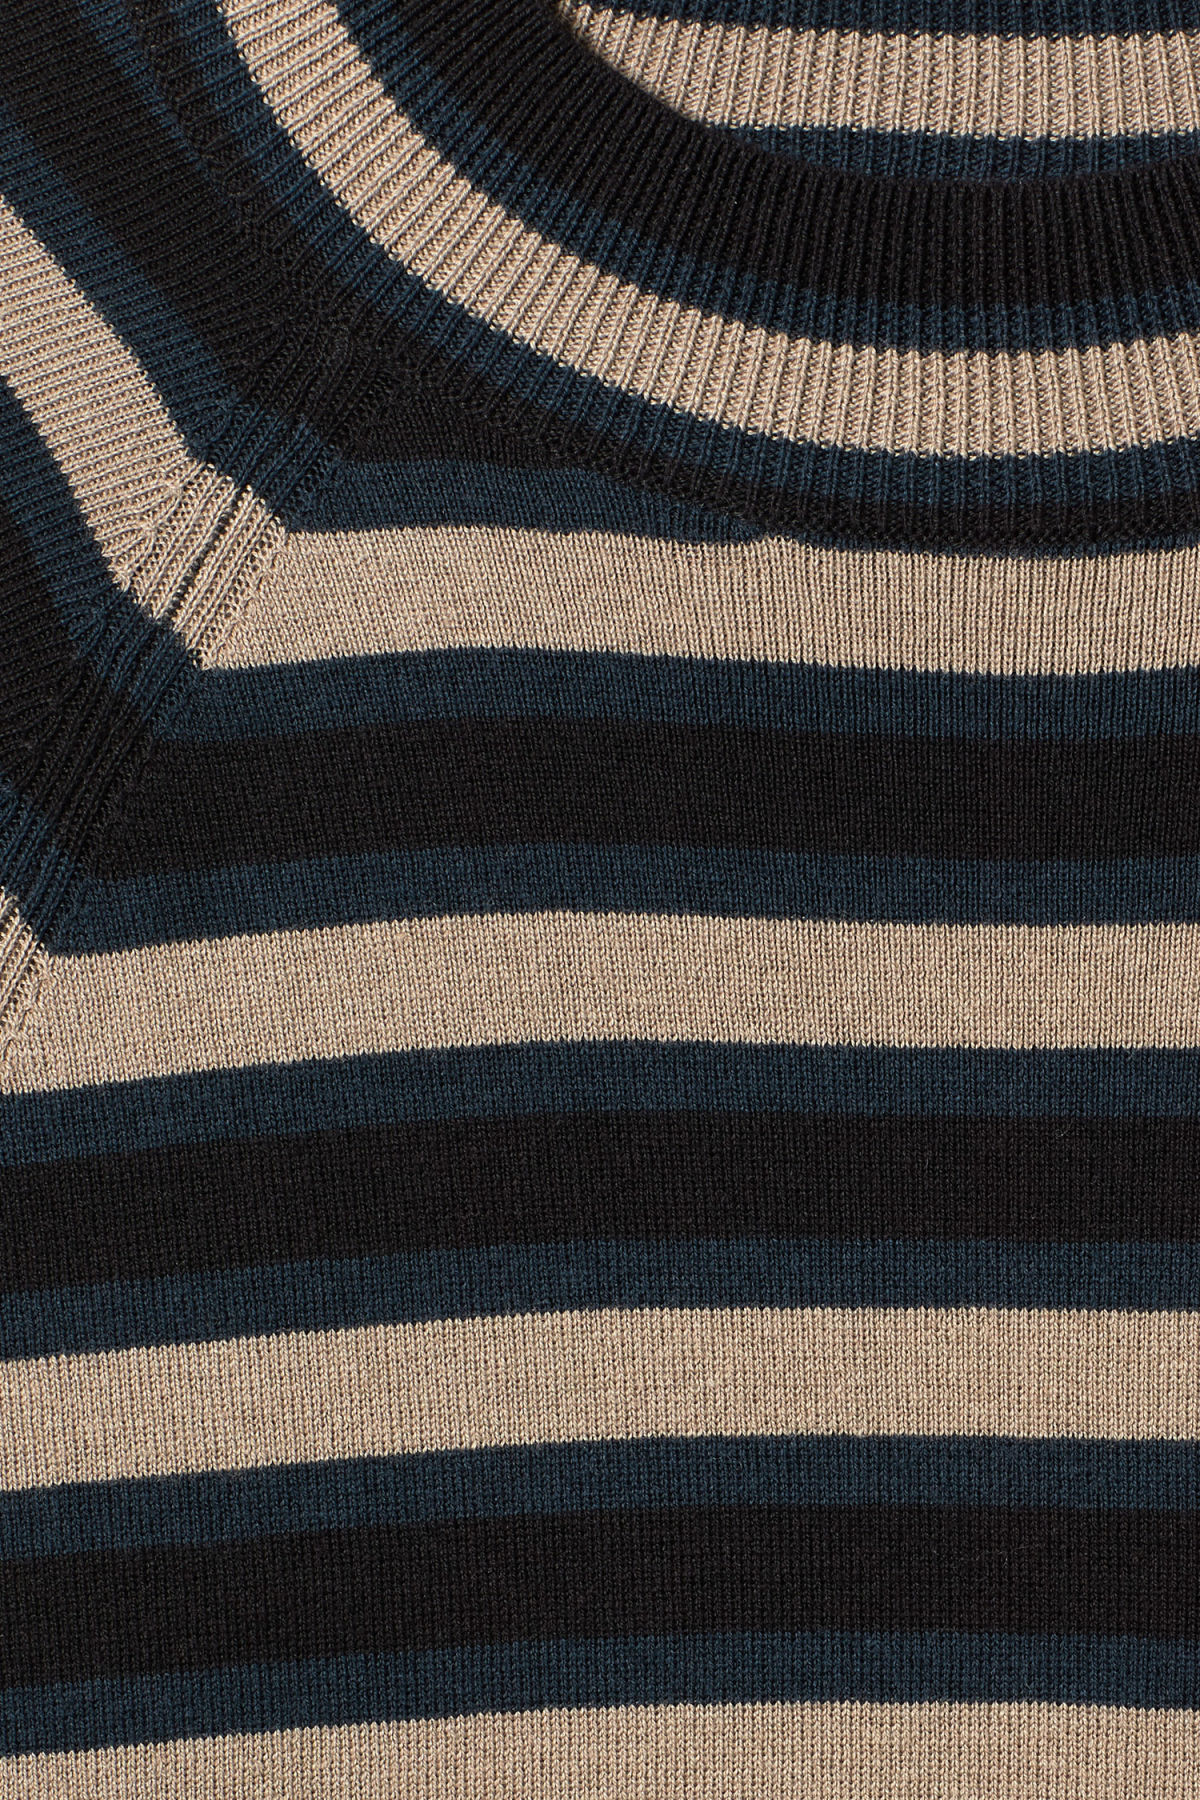 Detailed image of Weekday true sweater in black